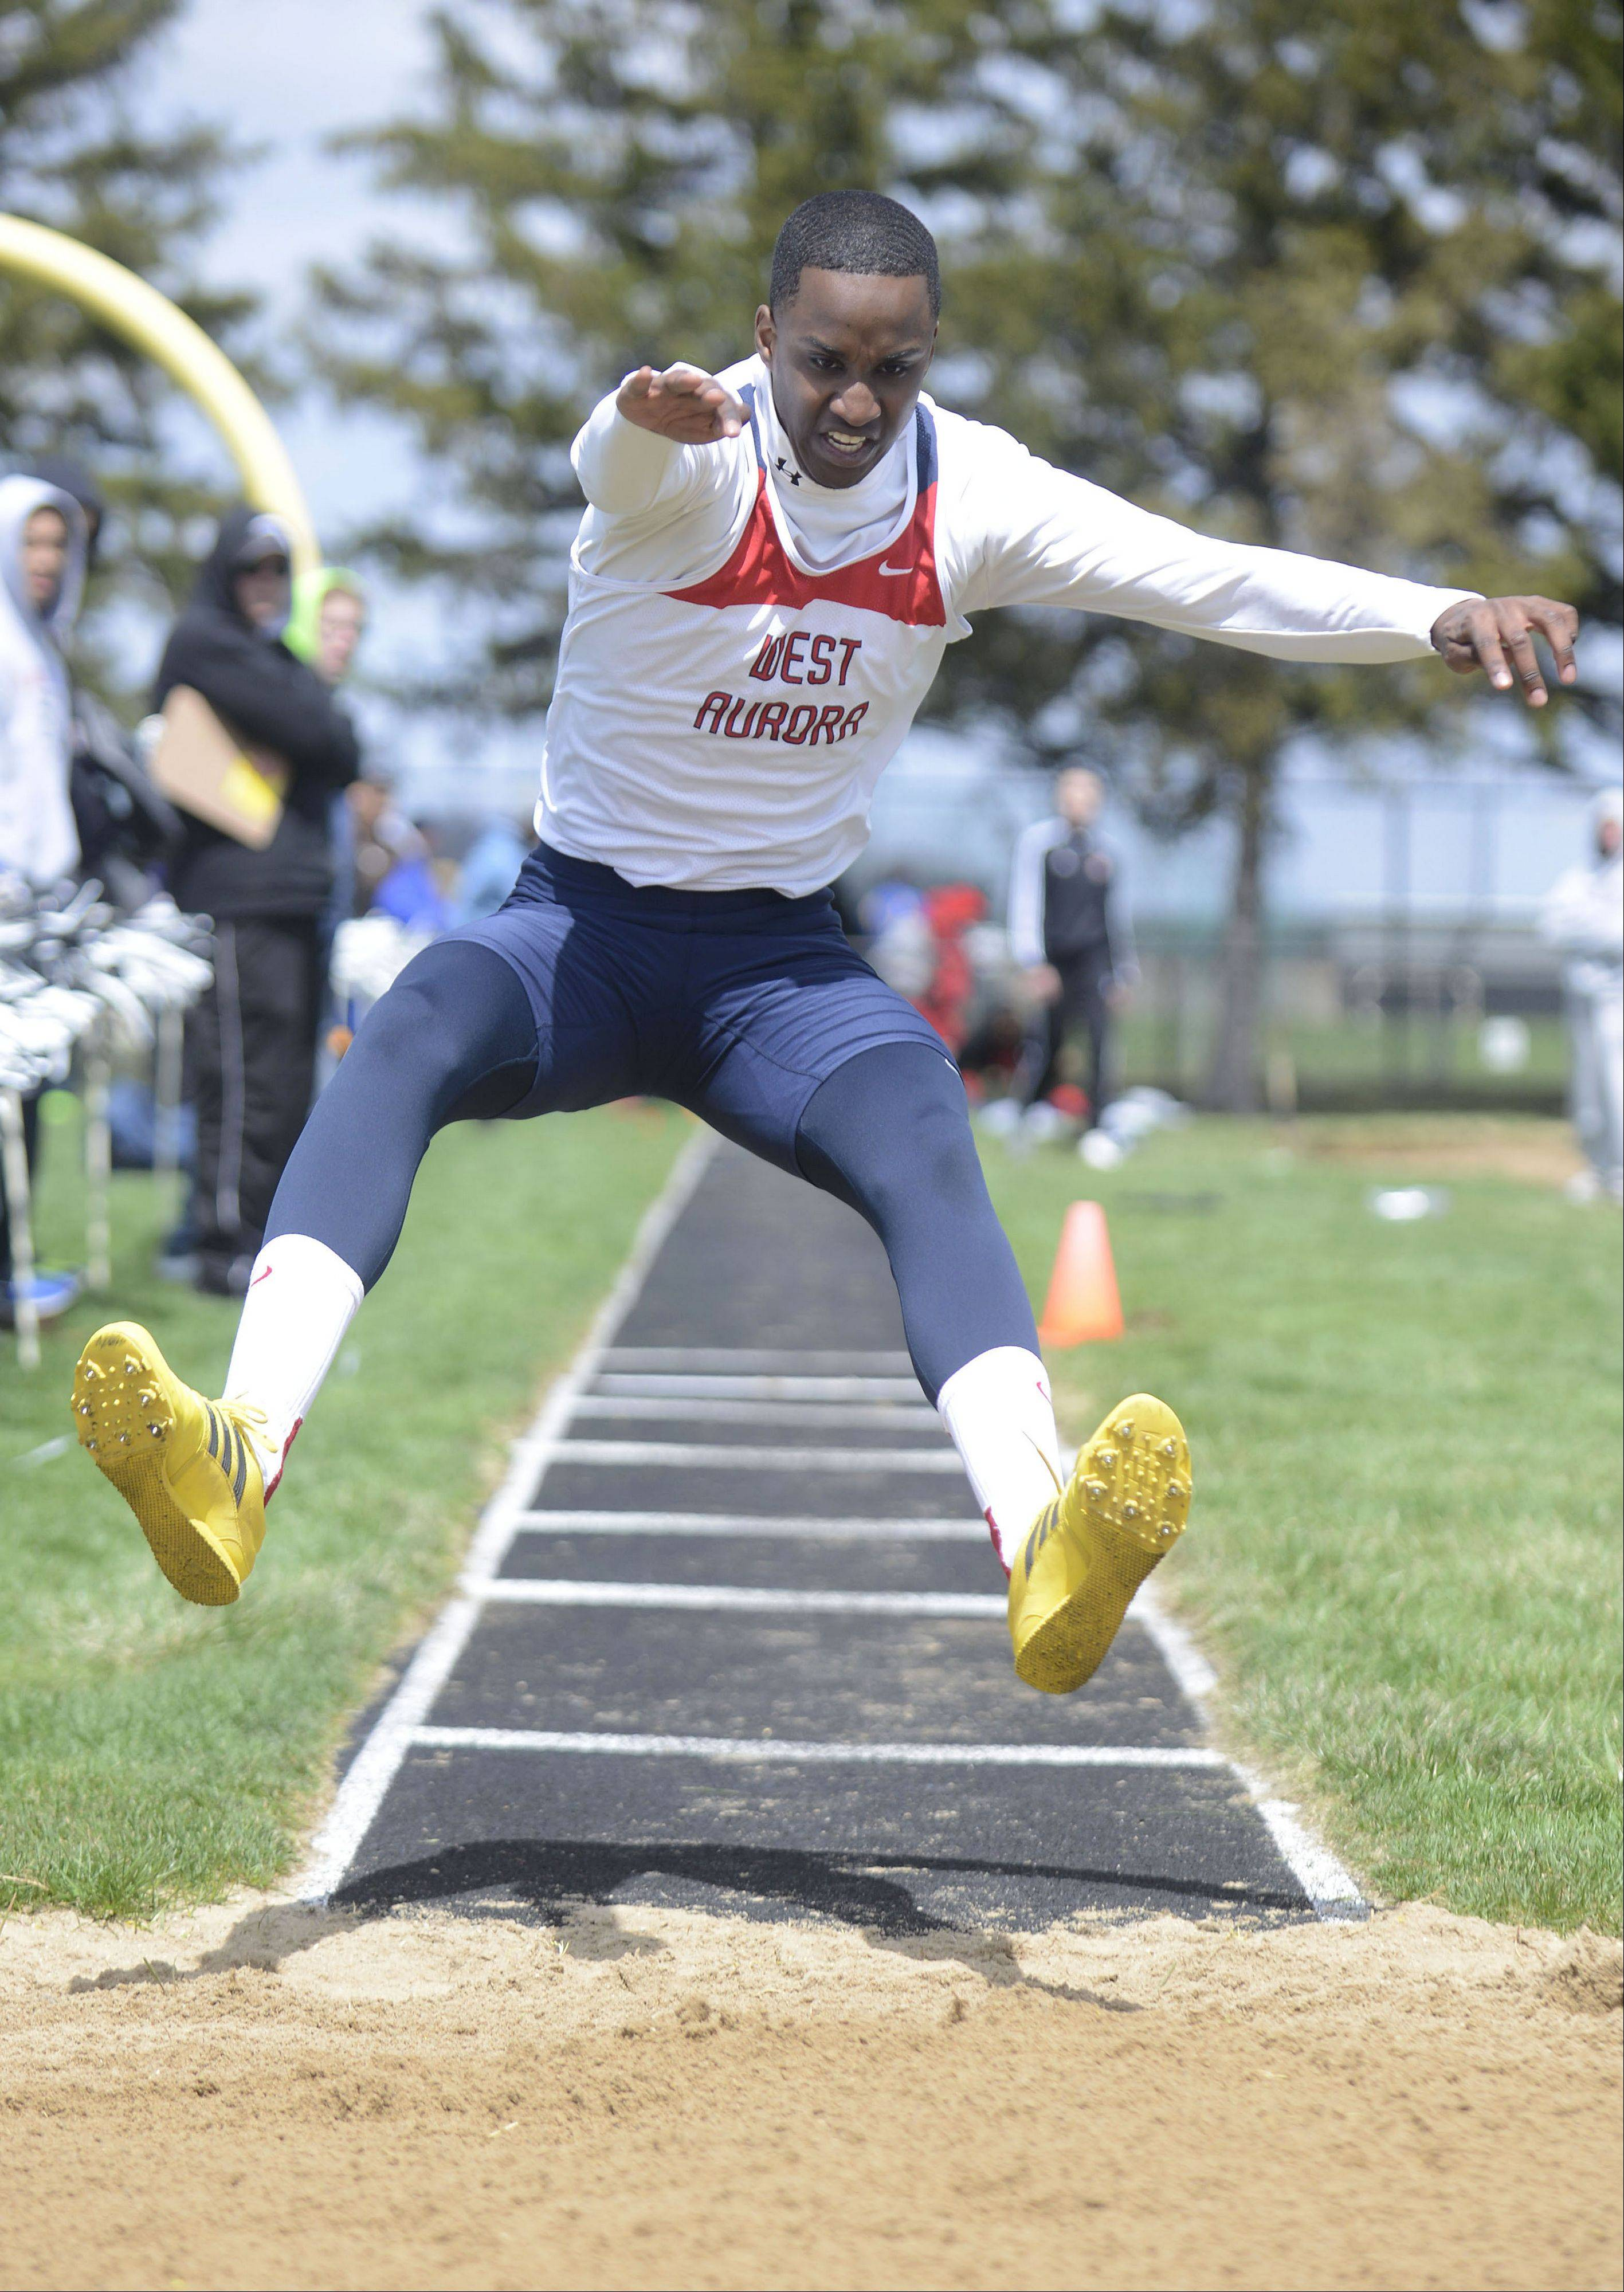 West Aurora's Aaron Kennebrew in the triple jump at the Kaneland meet on Saturday, April 20.